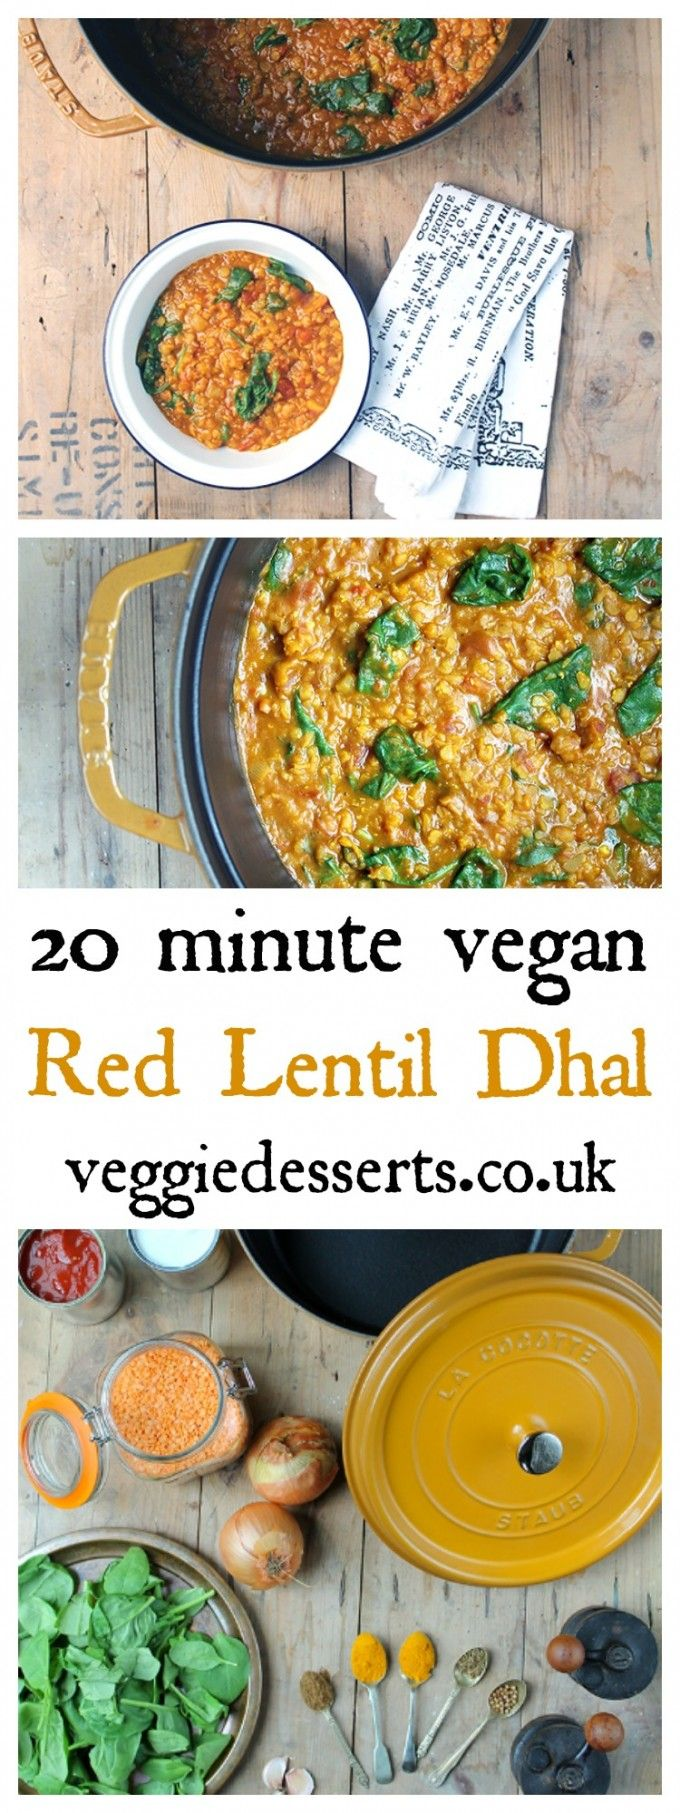 Red Lentil Dhal | Vegan | 20 minutes | Veggie Desserts Blog This quick and flavourful red lentil dahl (aka dal, daal, dhal) is a great vegan midweek meal or alternative homemade curry. Ready in only